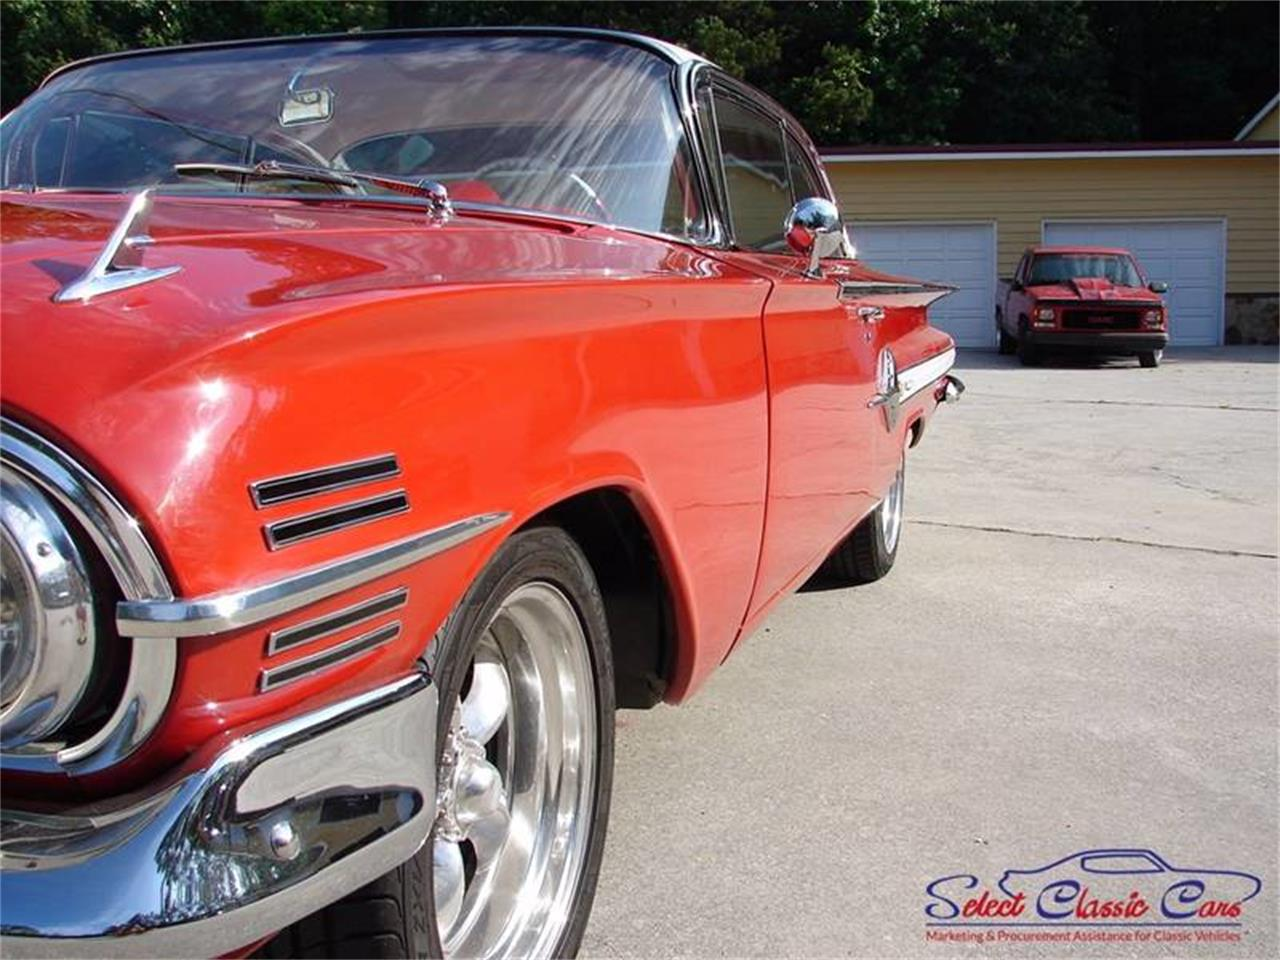 Large Picture of '60 Chevrolet Impala located in Georgia - $44,500.00 - L613